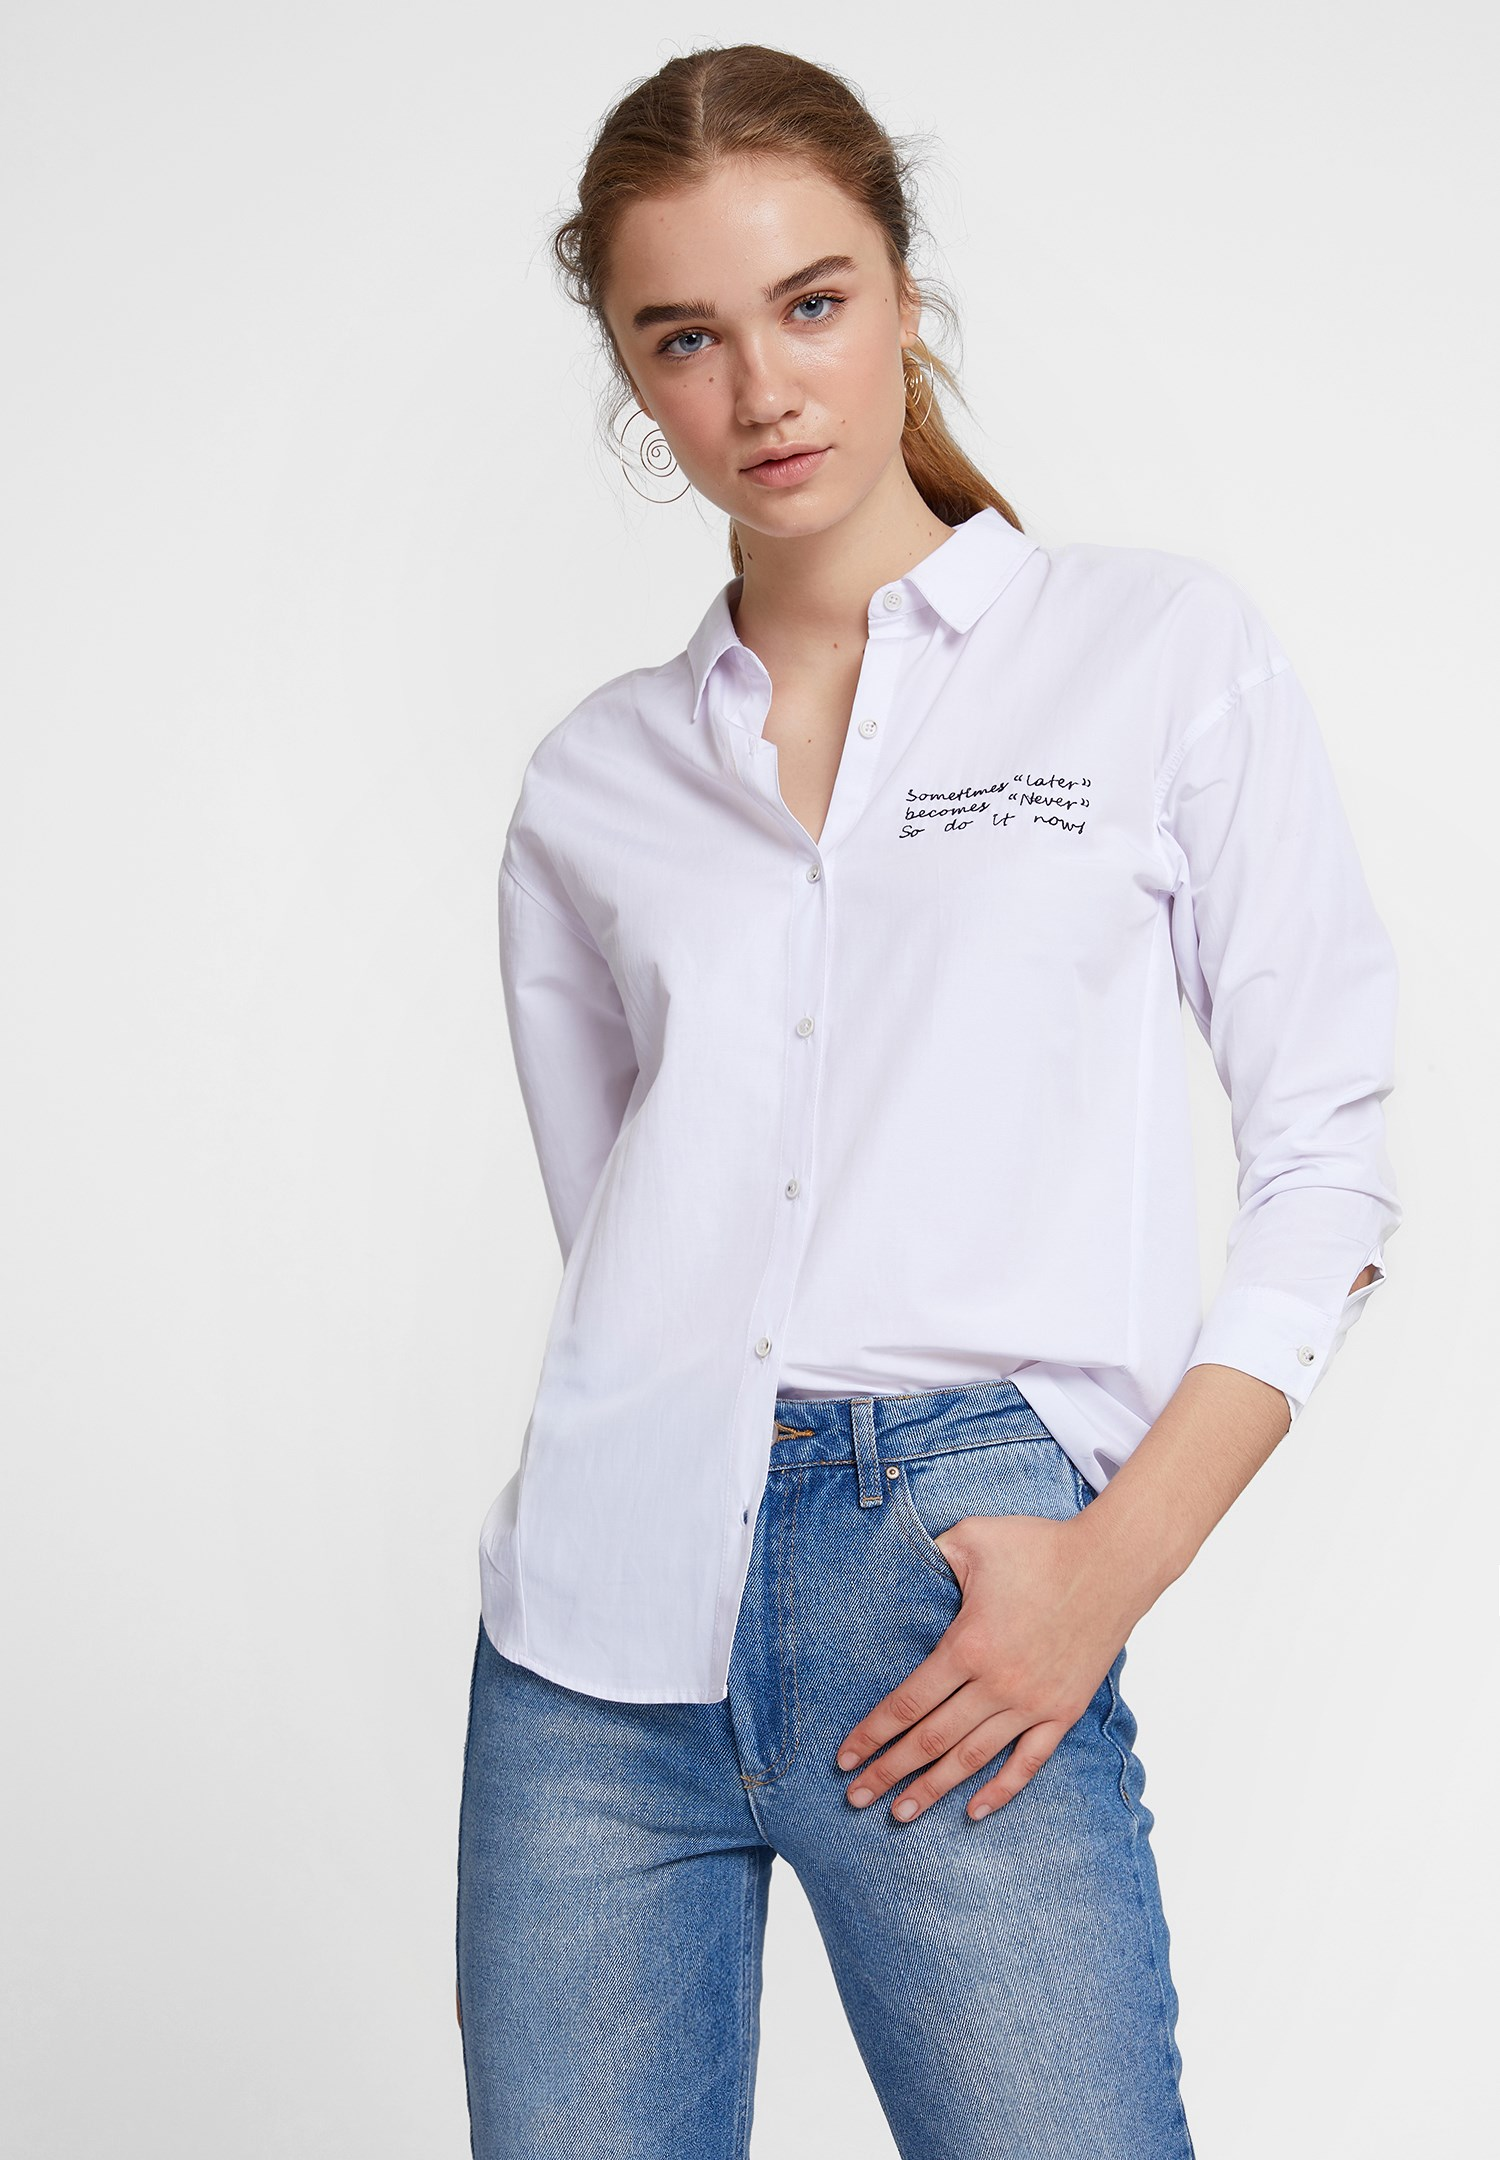 Women White Shirt with Slogan Details